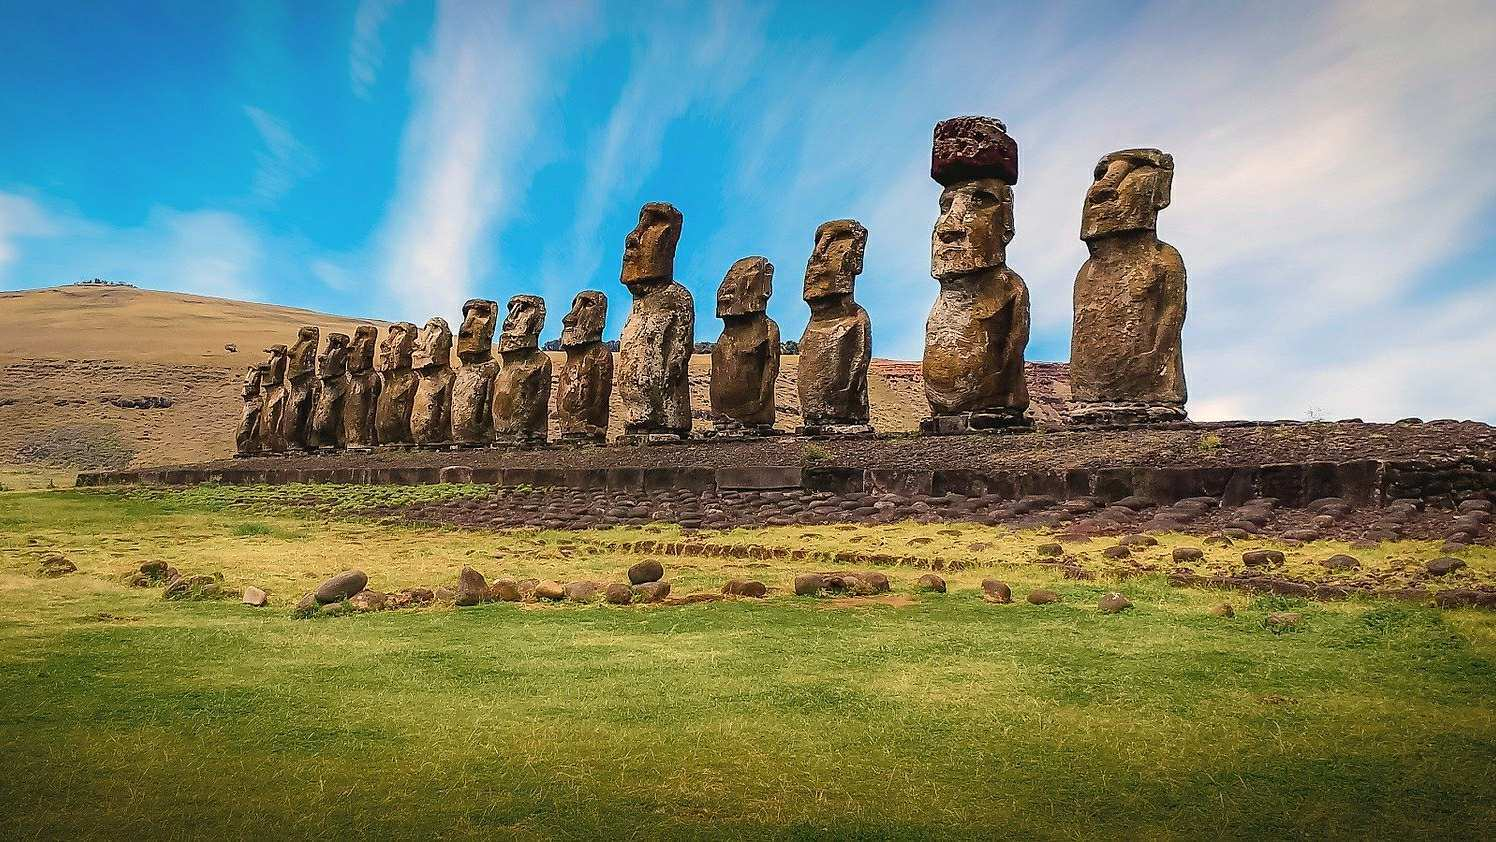 Rapanui Society continued after the deforestation of Easter Island 2